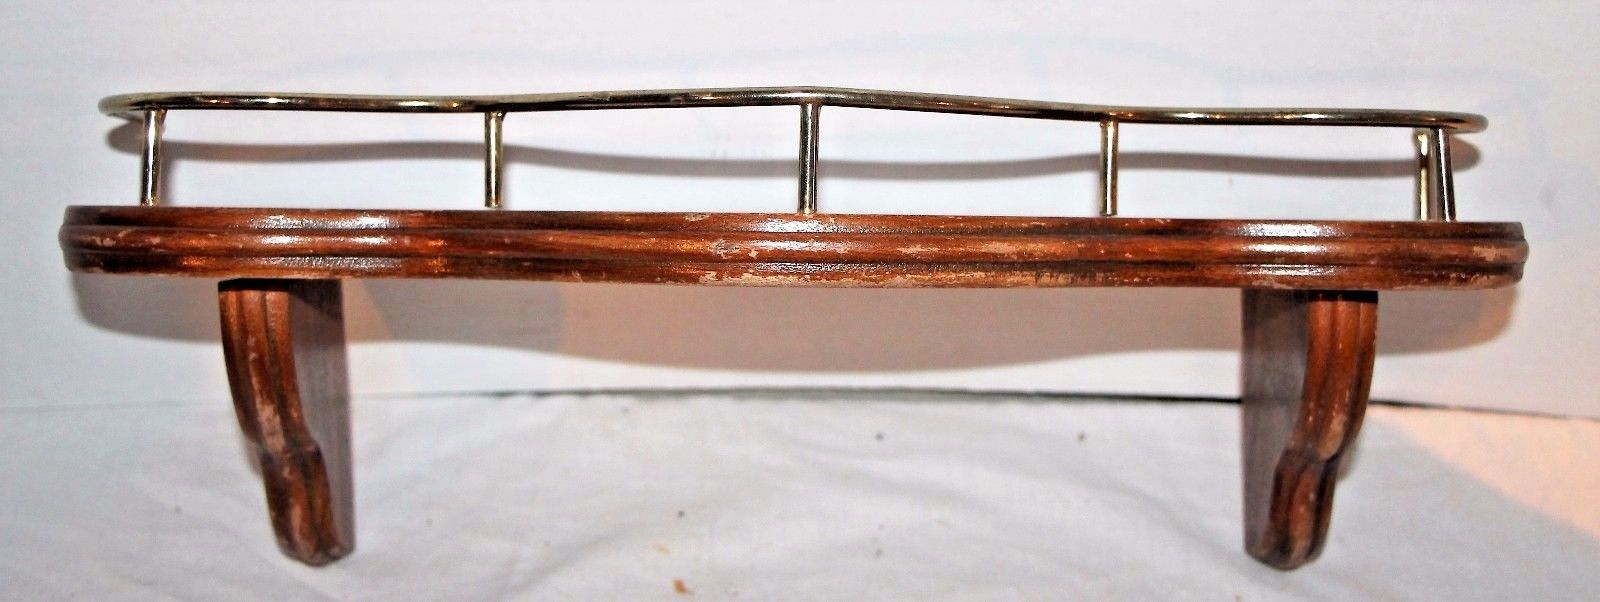 Vintage Wooden Single Shelf with Brass Edge Wall Decor Hanging